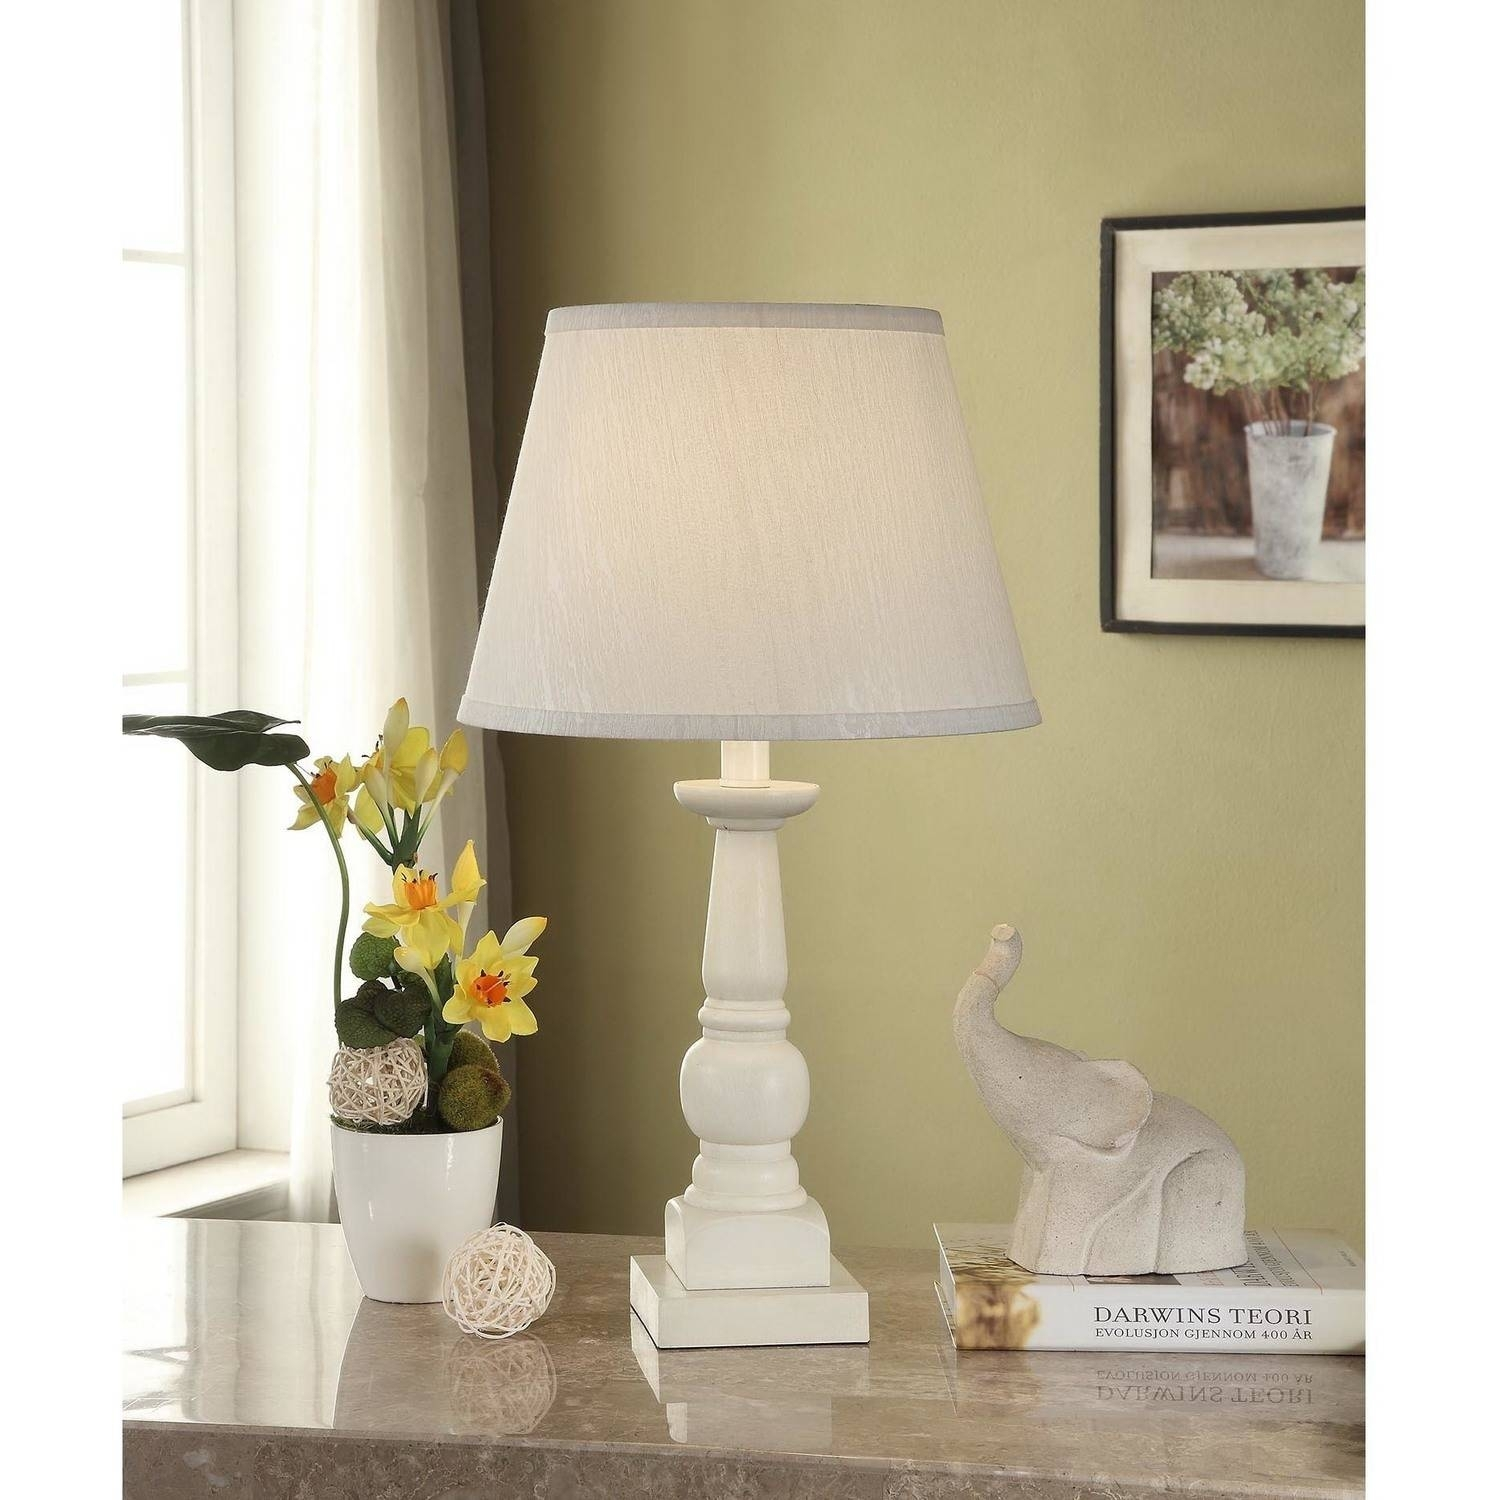 Inspiration about Mainstays Washed Finish Wood Table Lamp Base – Walmart For Wood Table Lamps For Living Room (#7 of 15)